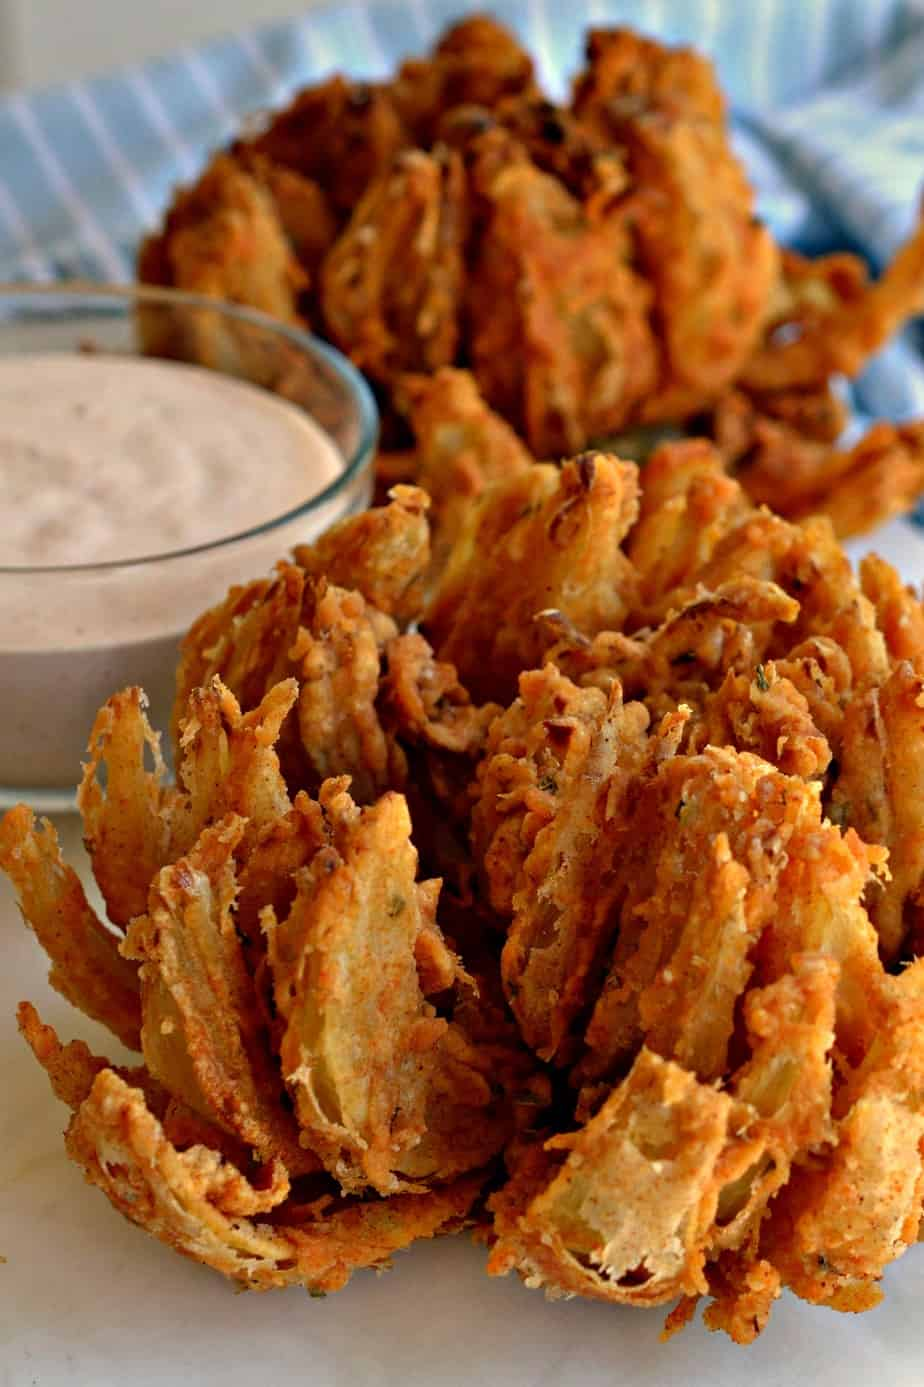 Better than Outbacks these Blooming Onions are super simple to make.